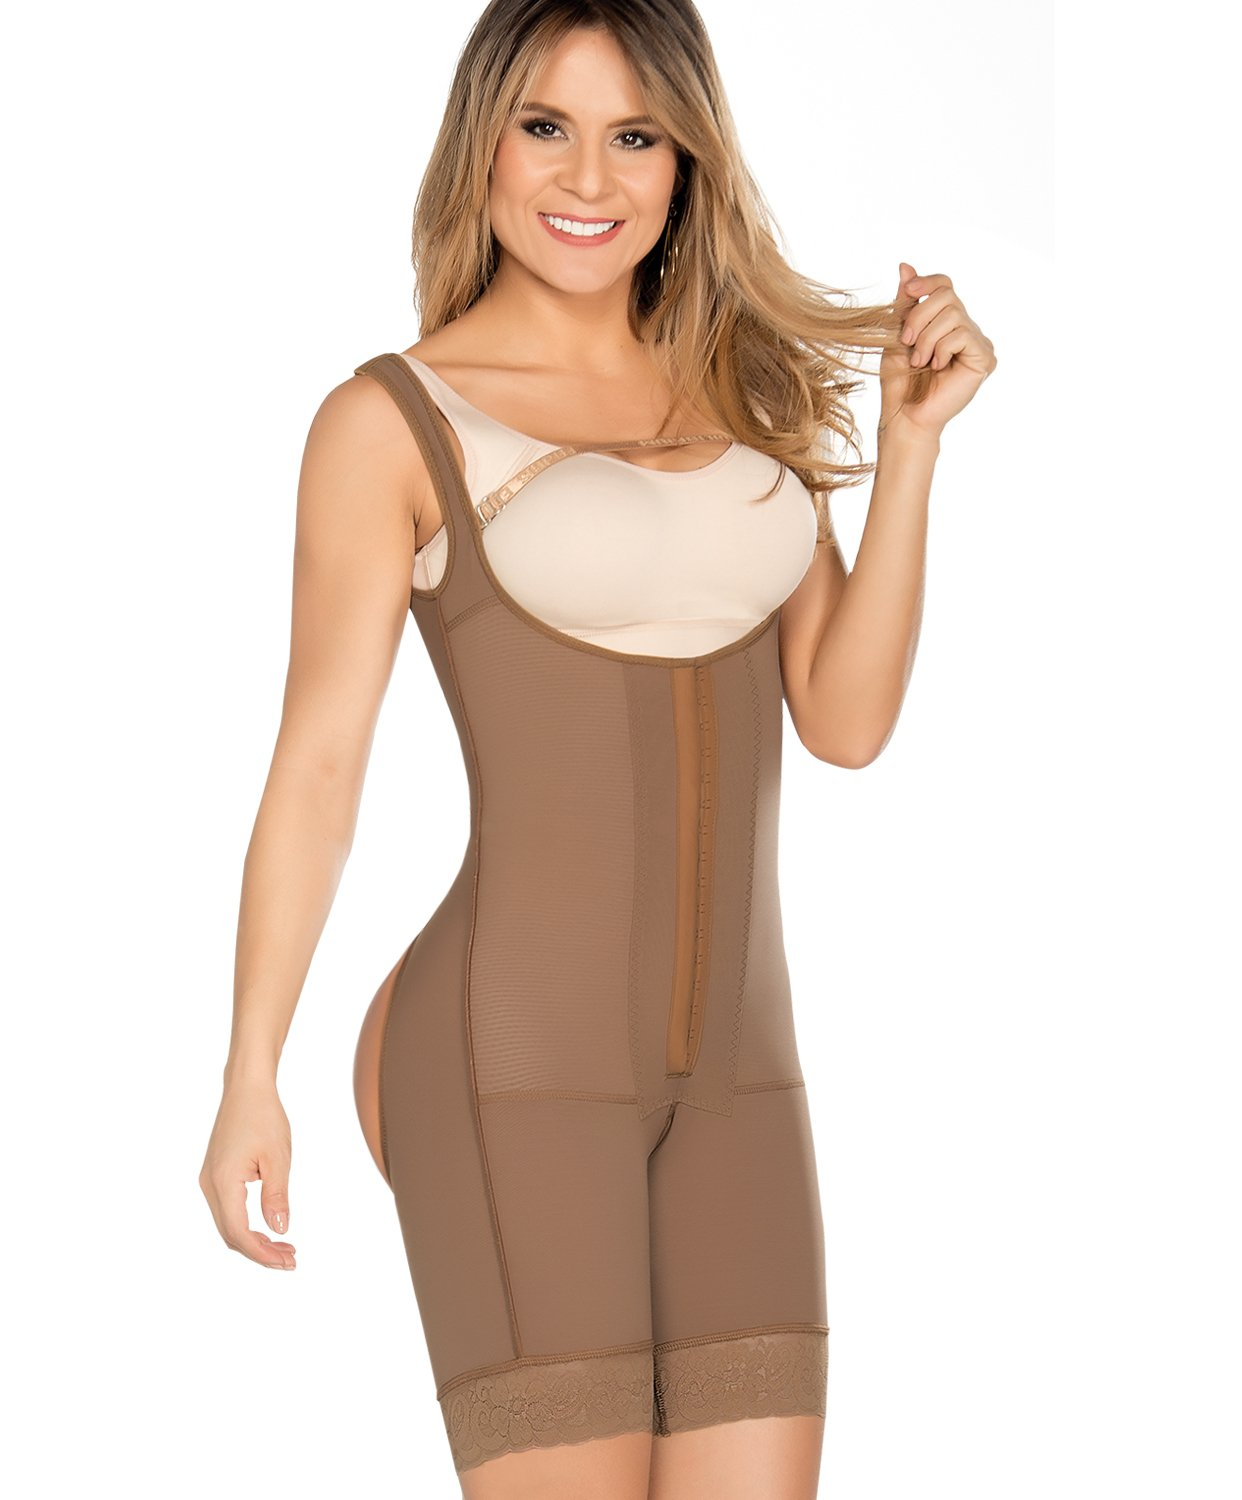 Equilibrium Fajas Colombianas Post Surgery Short Leg Style Bodysuit - C9003